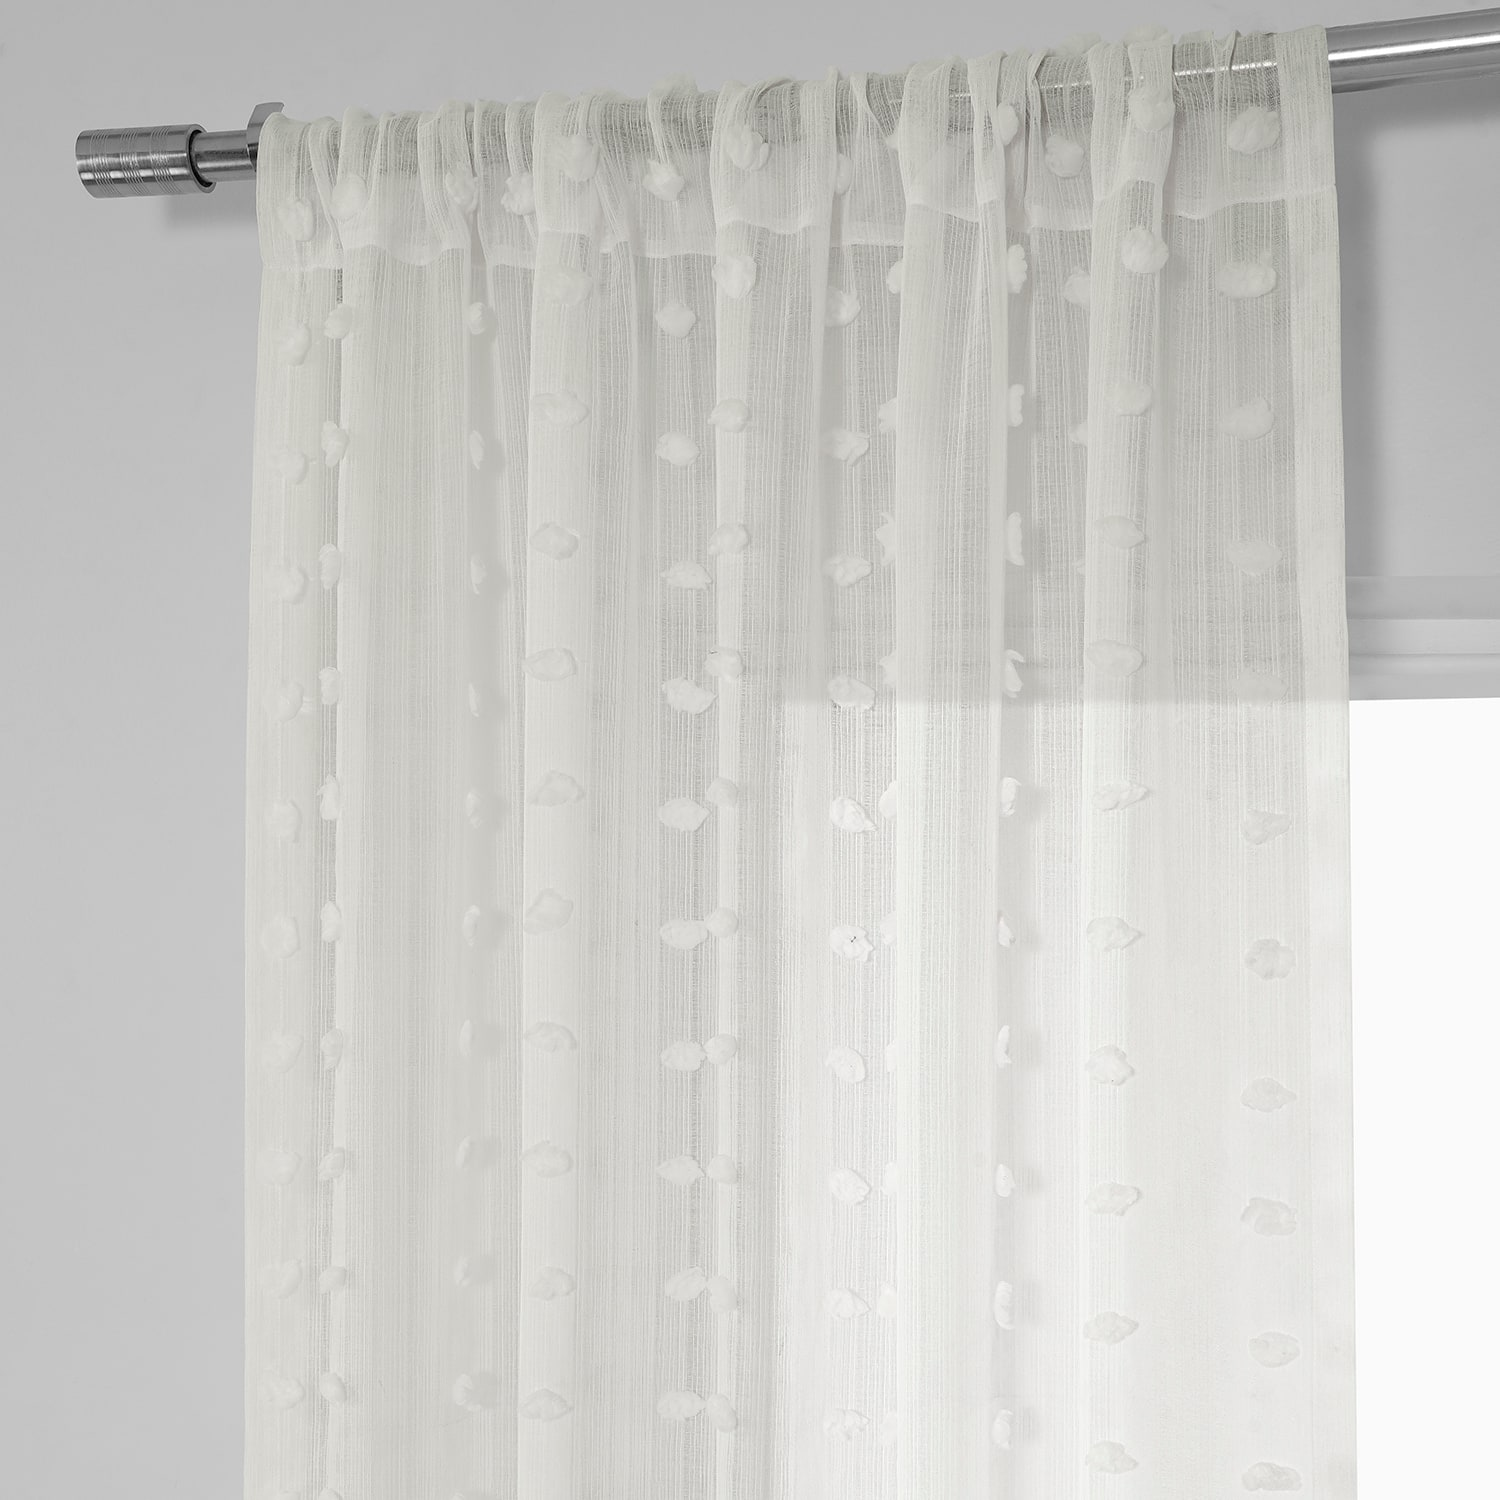 Strasbourg Dot Patterned Faux Linen Sheer Curtain